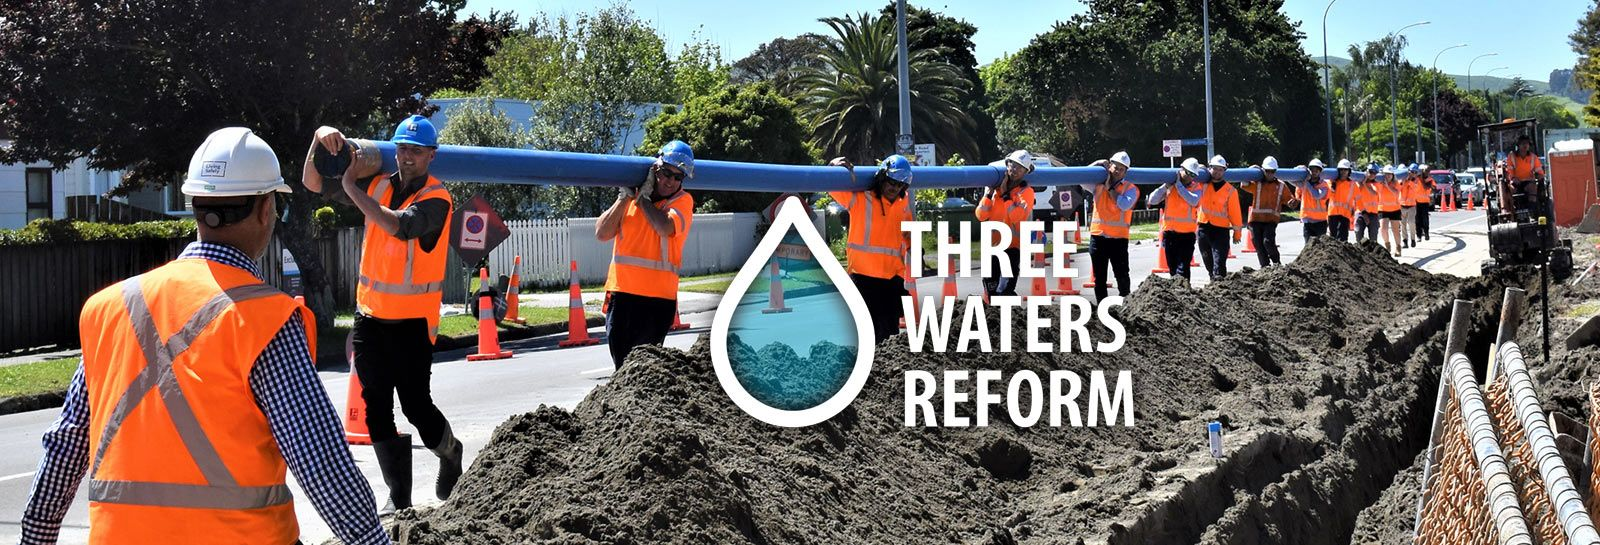 3 waters reform banner image